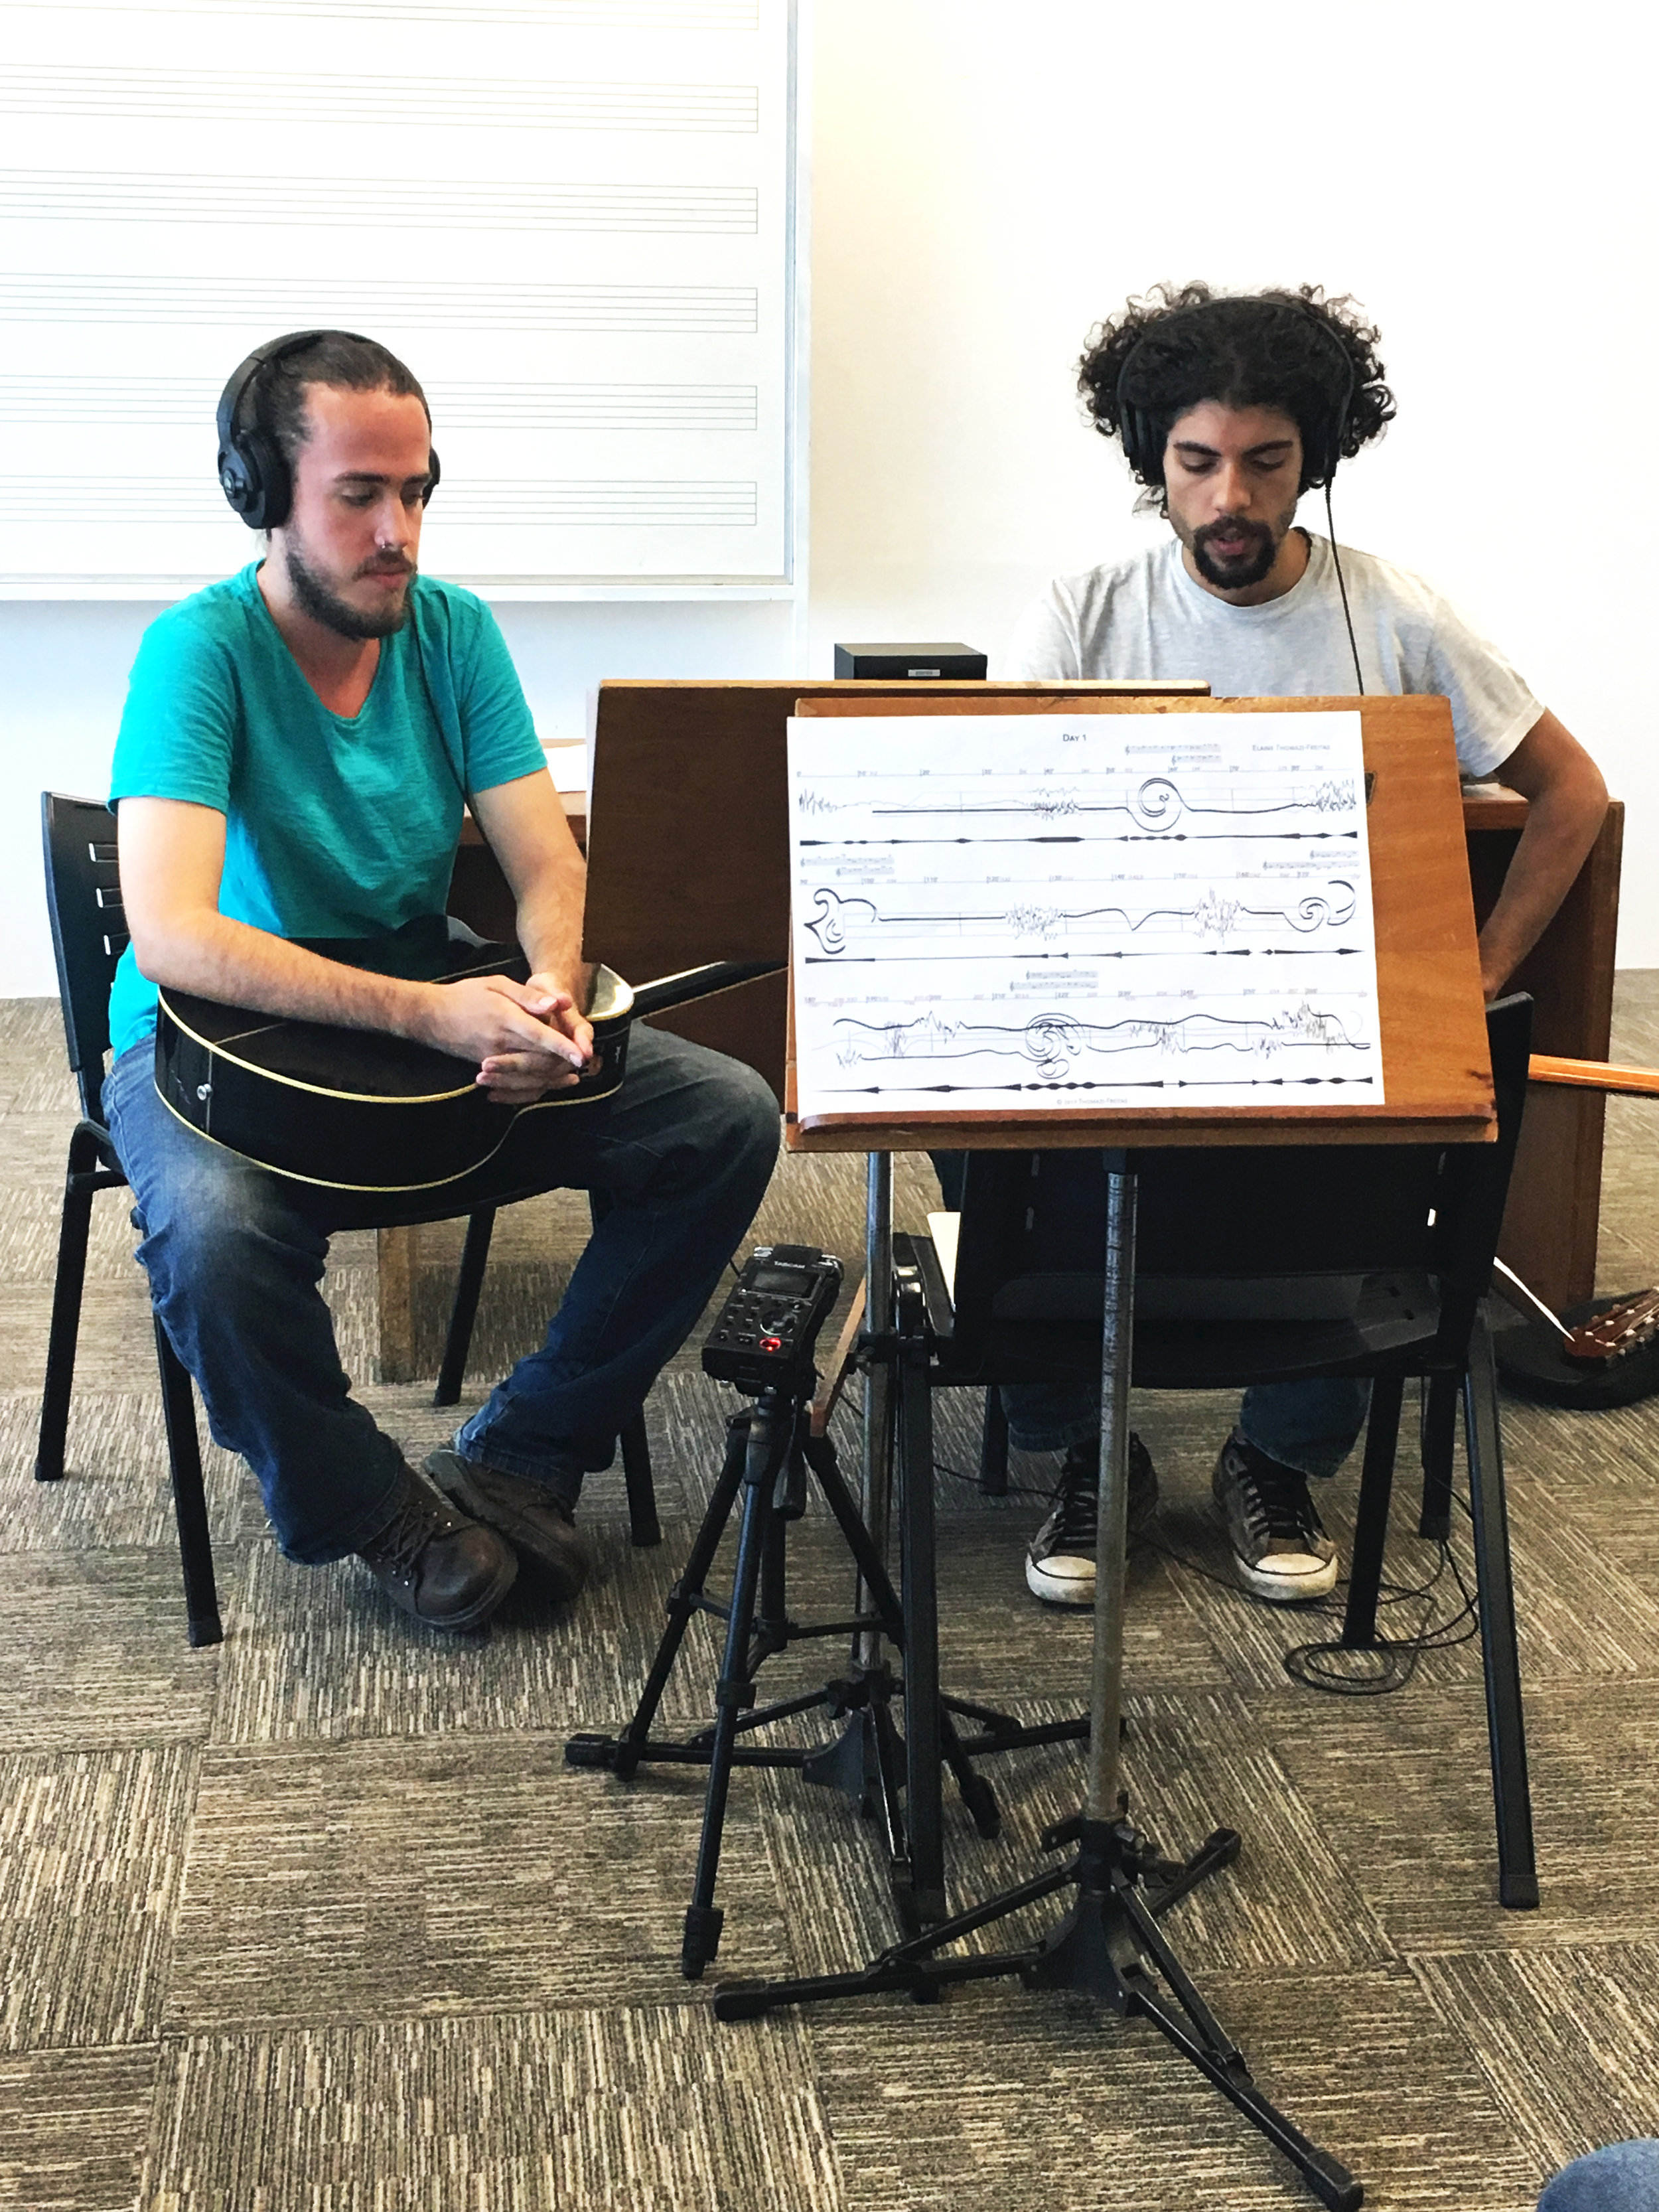 School of Music – Federal University of Rio de Janeiro; Brazil, December 2017.  Experimental Music Workshop  with UG Music students and special guests on the work   Day 1  .